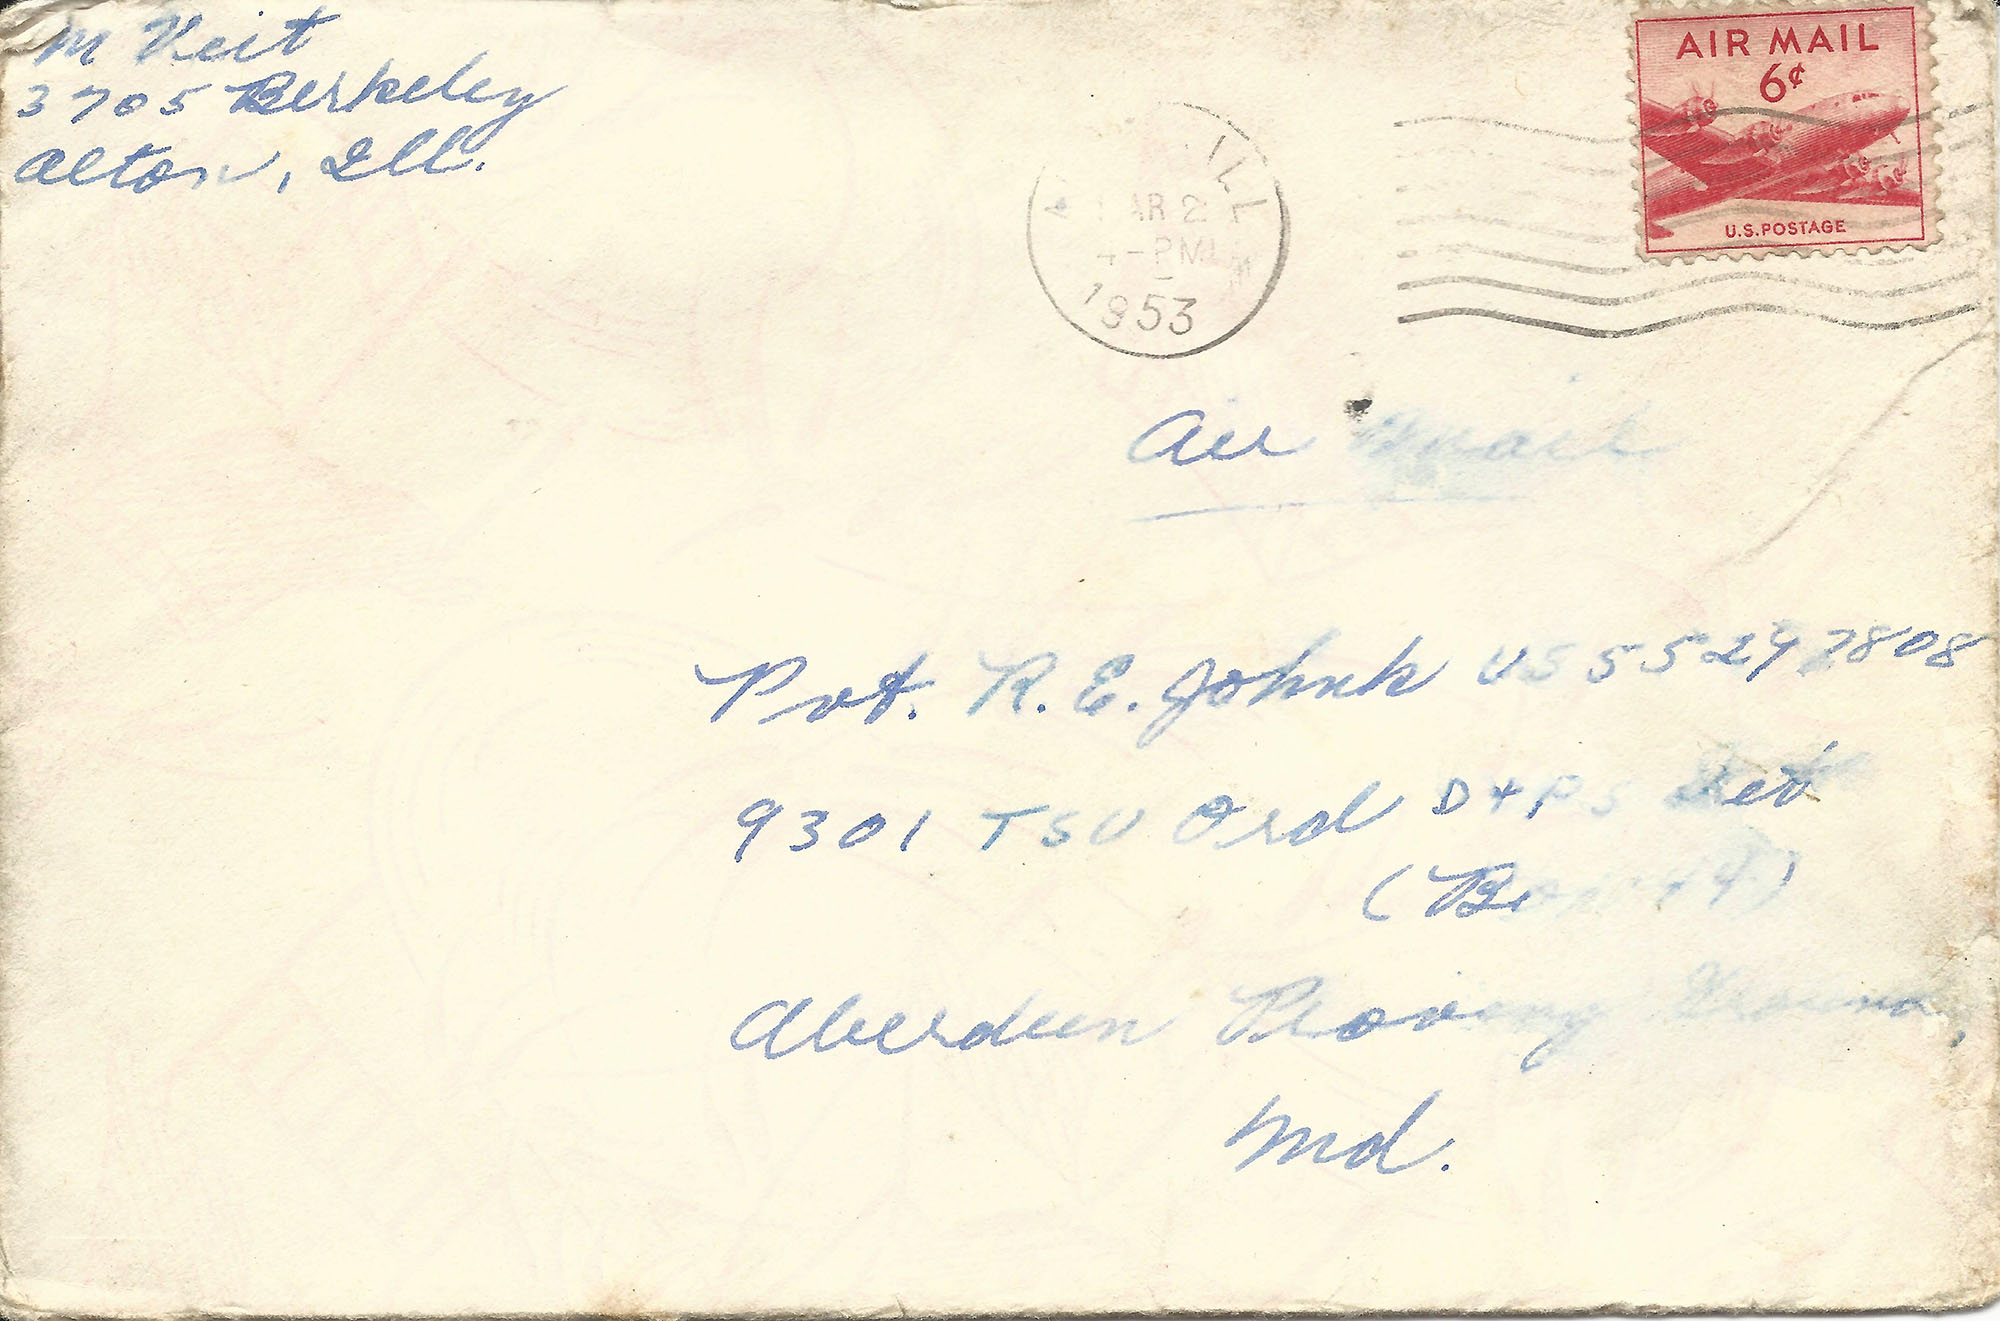 Mar. 1, 1953 (Marj), Envelope